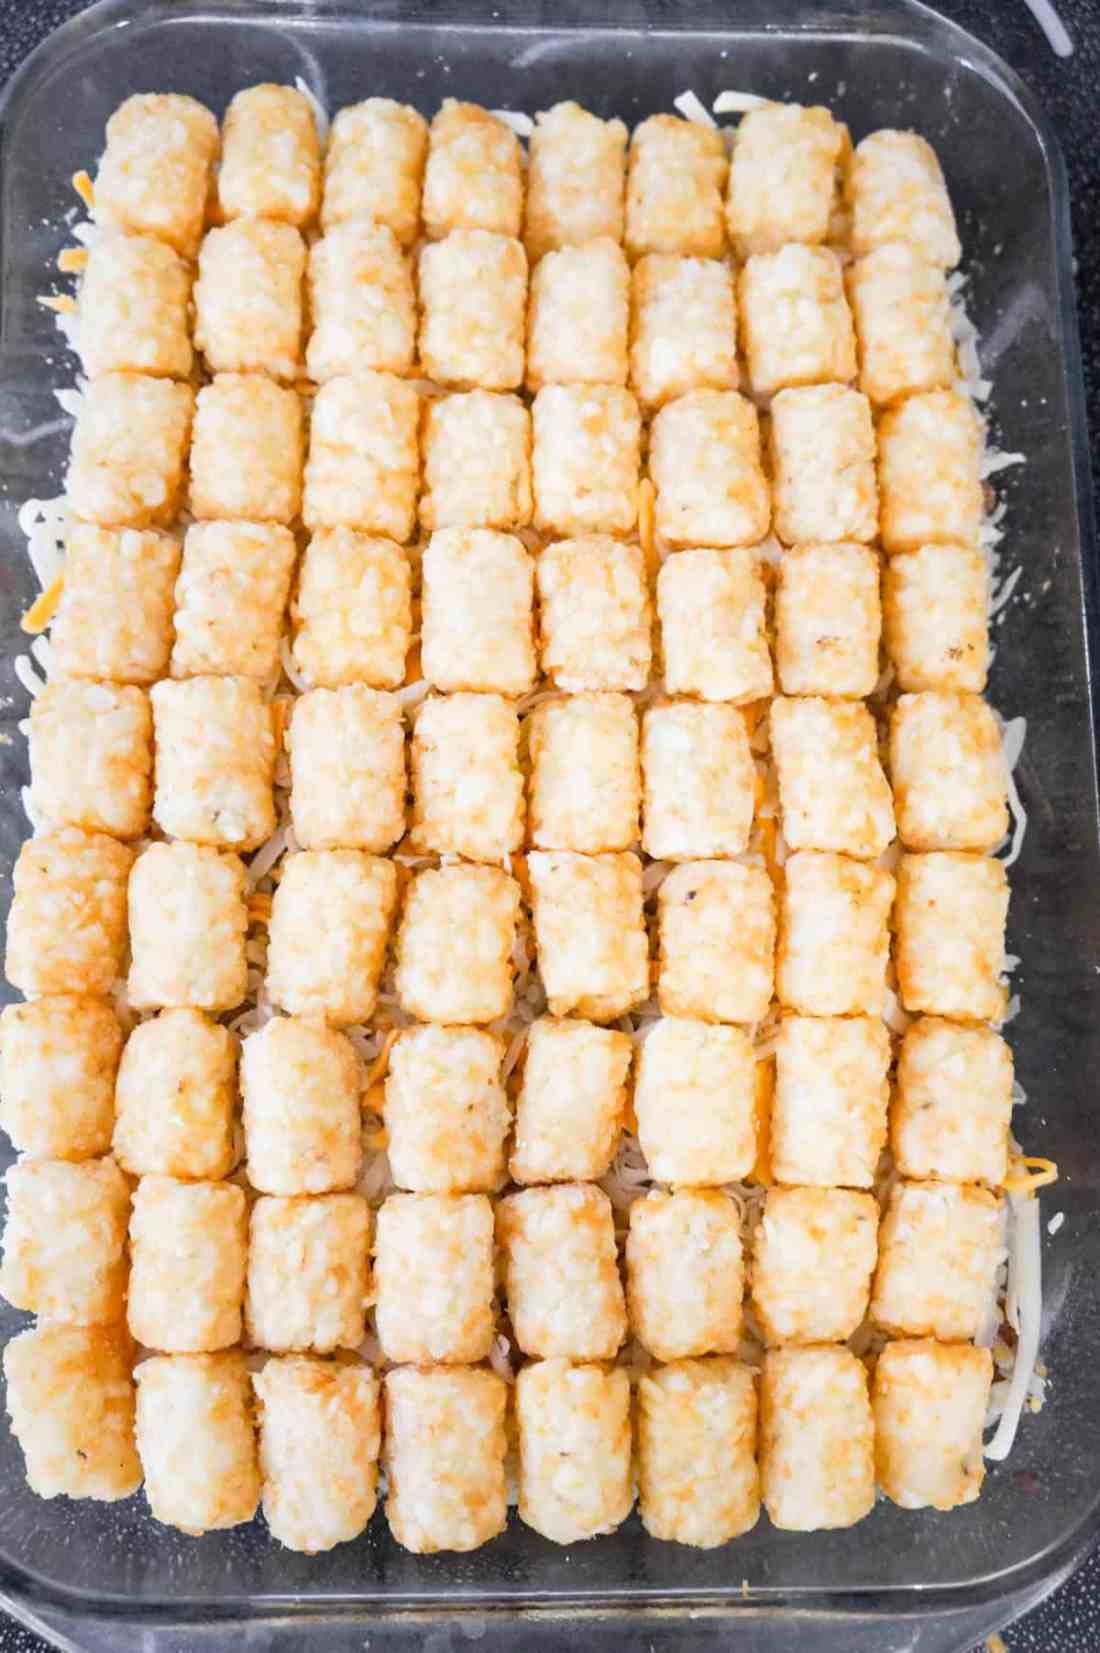 tater tot casserole before baking